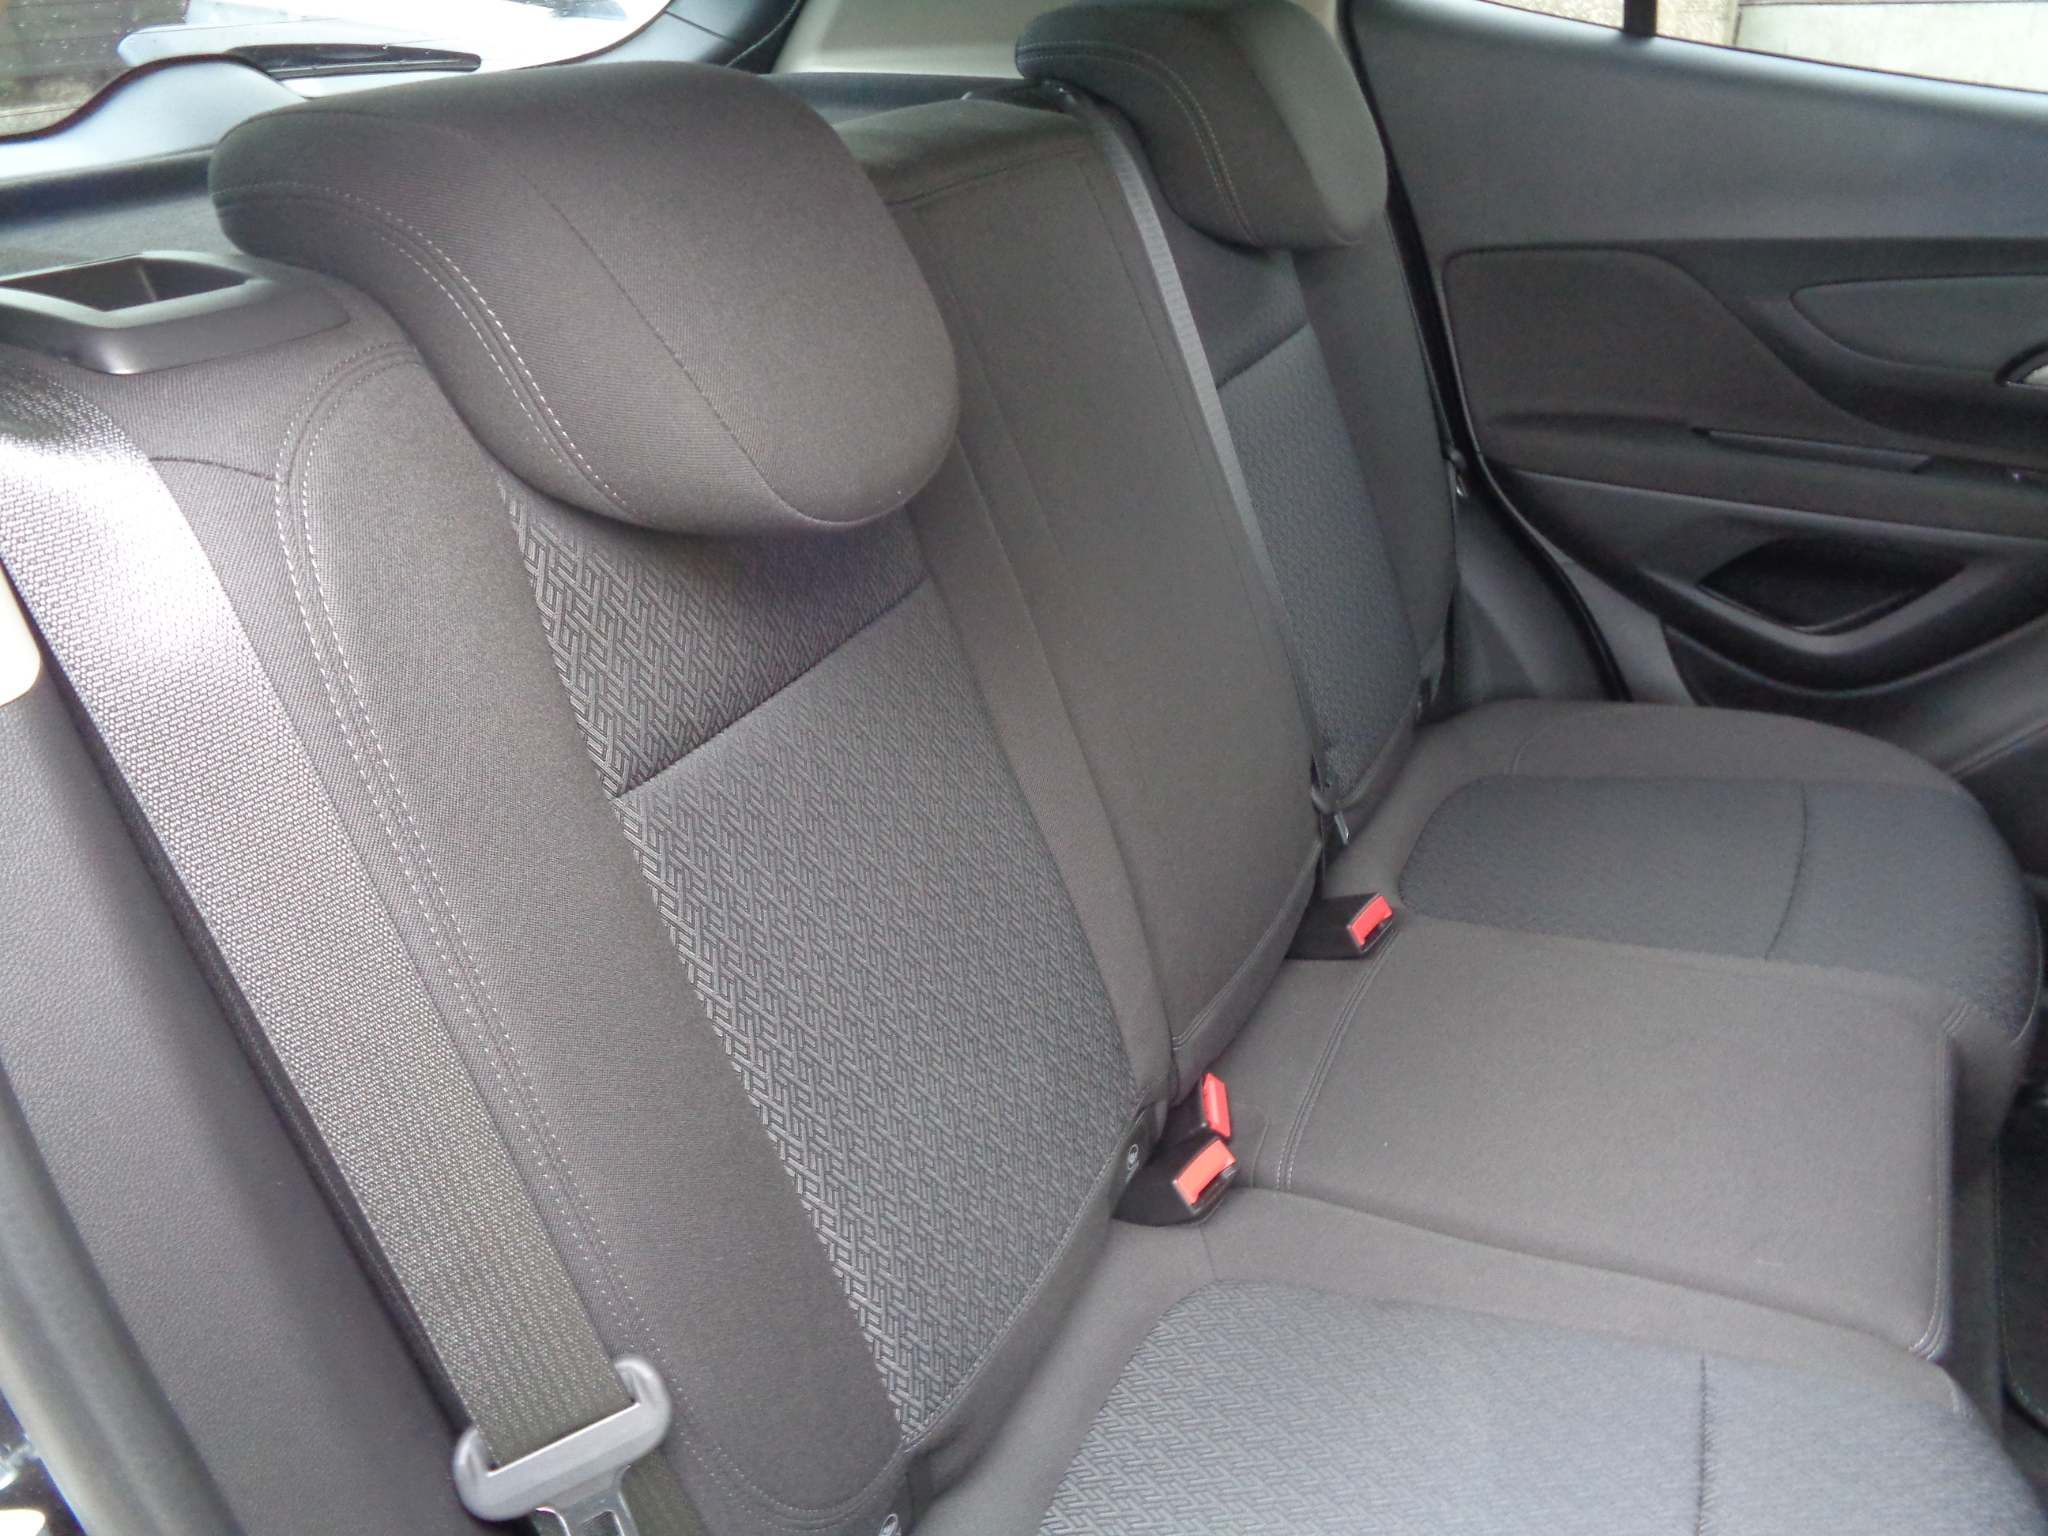 http://pictures2.autotrader.co.uk/imgser-uk/servlet/media?id=7c06bb5845a745cea6ed9a3eaed04d1c